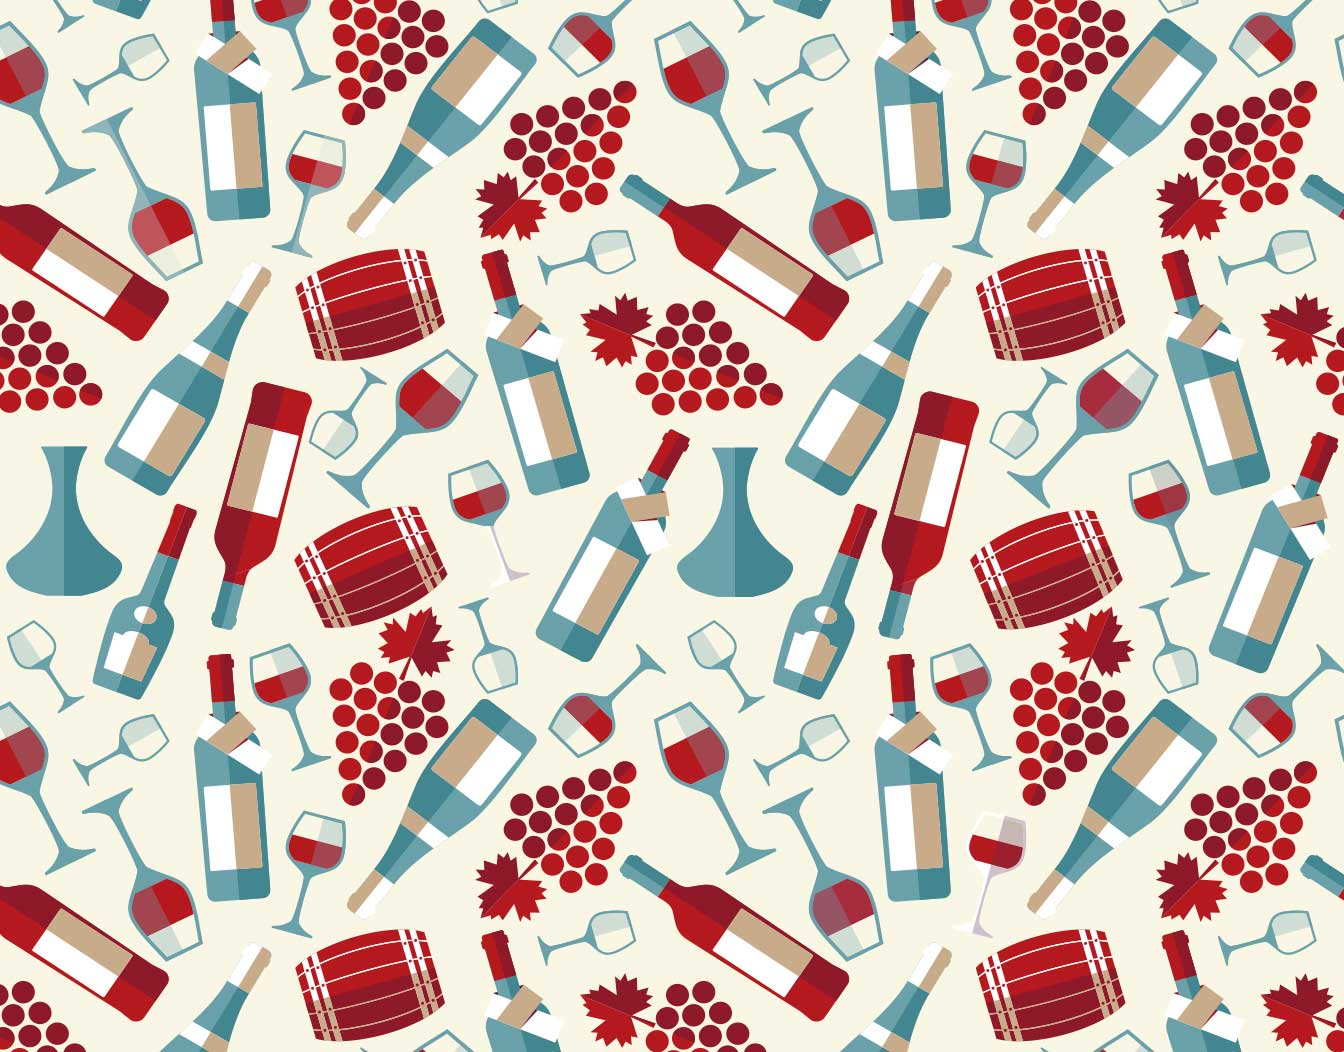 New year card background with bottles and grapes